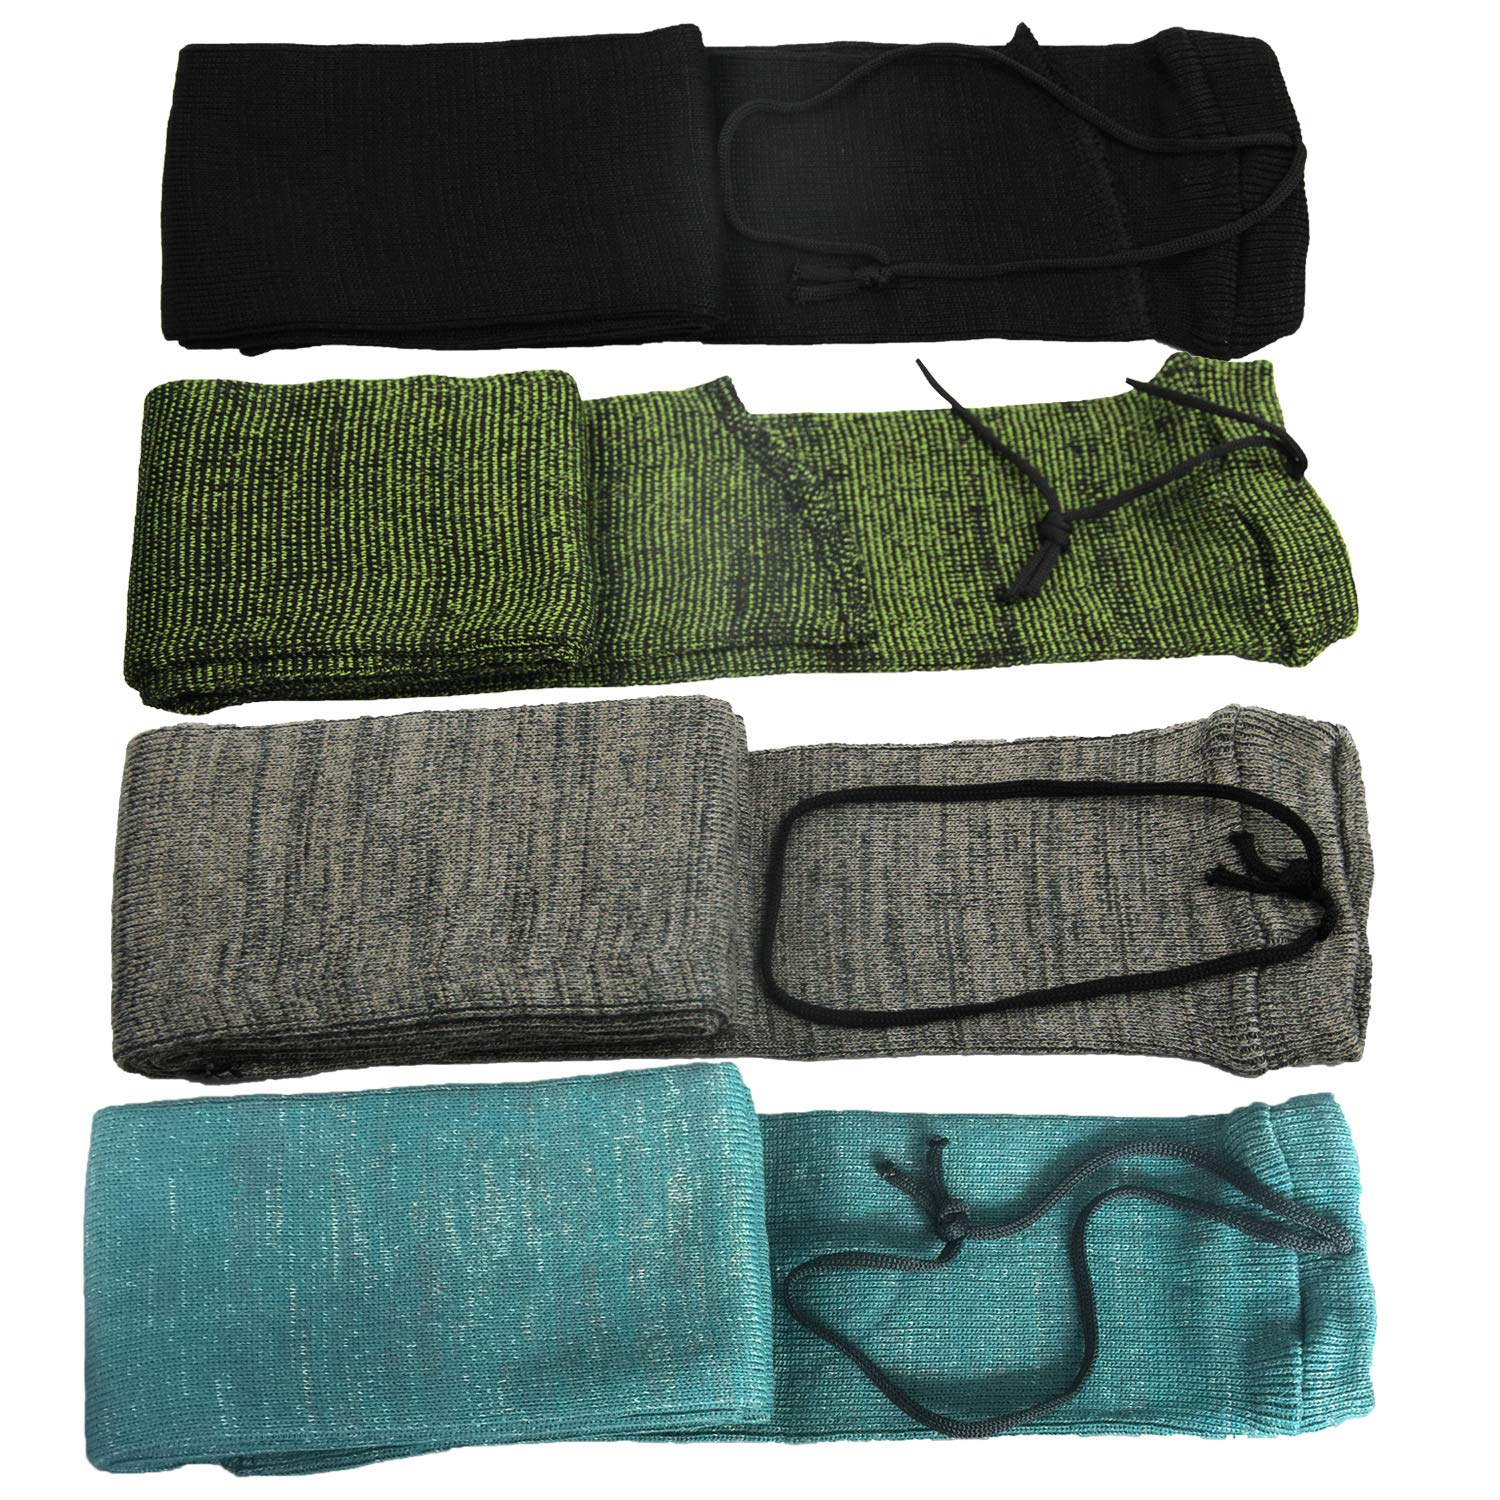 GUGULUZA Silicone Treated Knit Gun Socks 52'' for Rifles (Mixed Color) by GUGULUZA